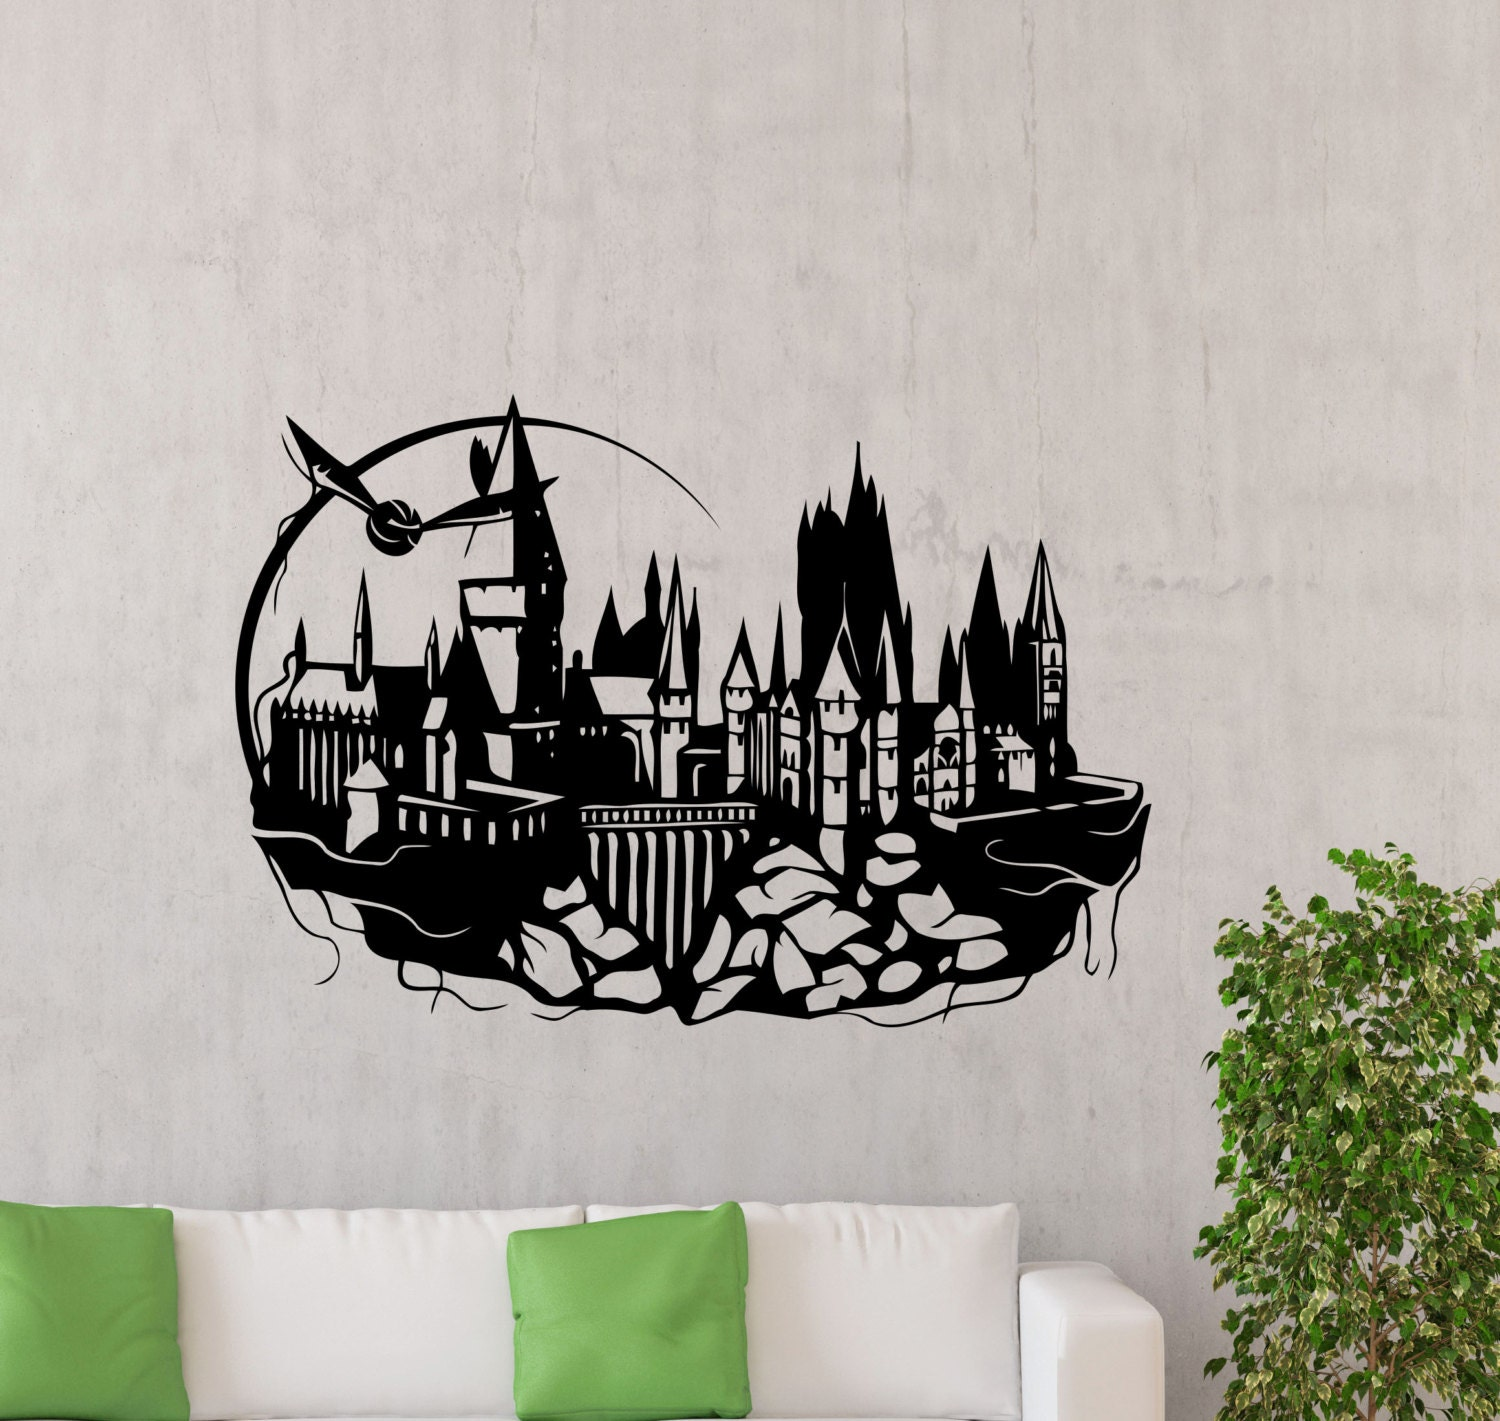 Medium Castle Decoration: Hogwarts Wall Decal Harry Potter Magic Kingdom Silhouette